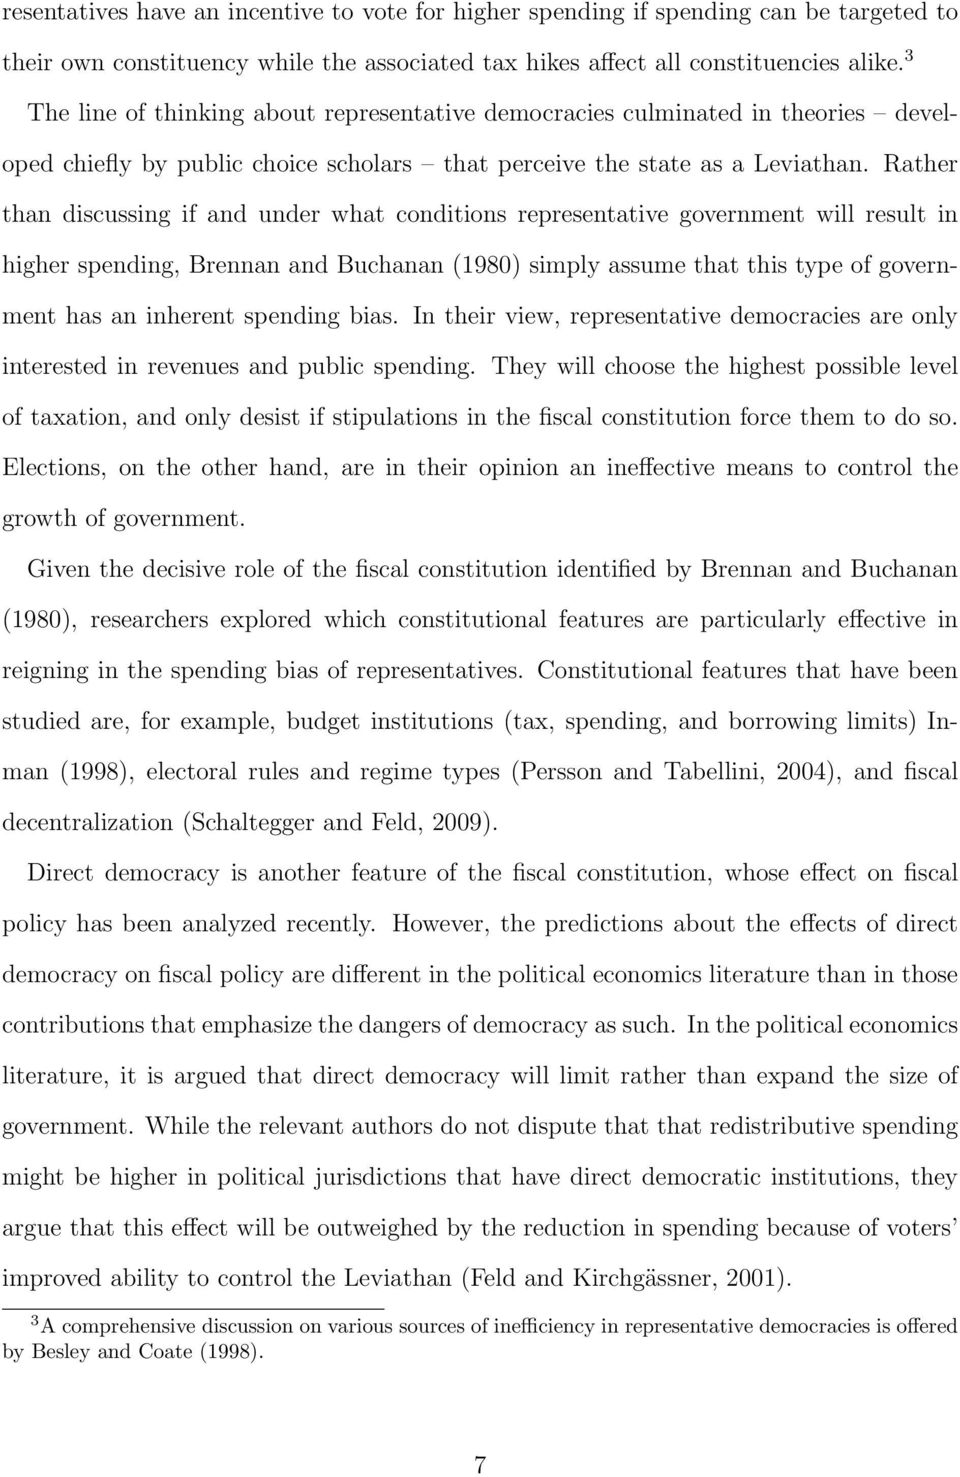 Rather than discussing if and under what conditions representative government will result in higher spending, Brennan and Buchanan (1980) simply assume that this type of government has an inherent